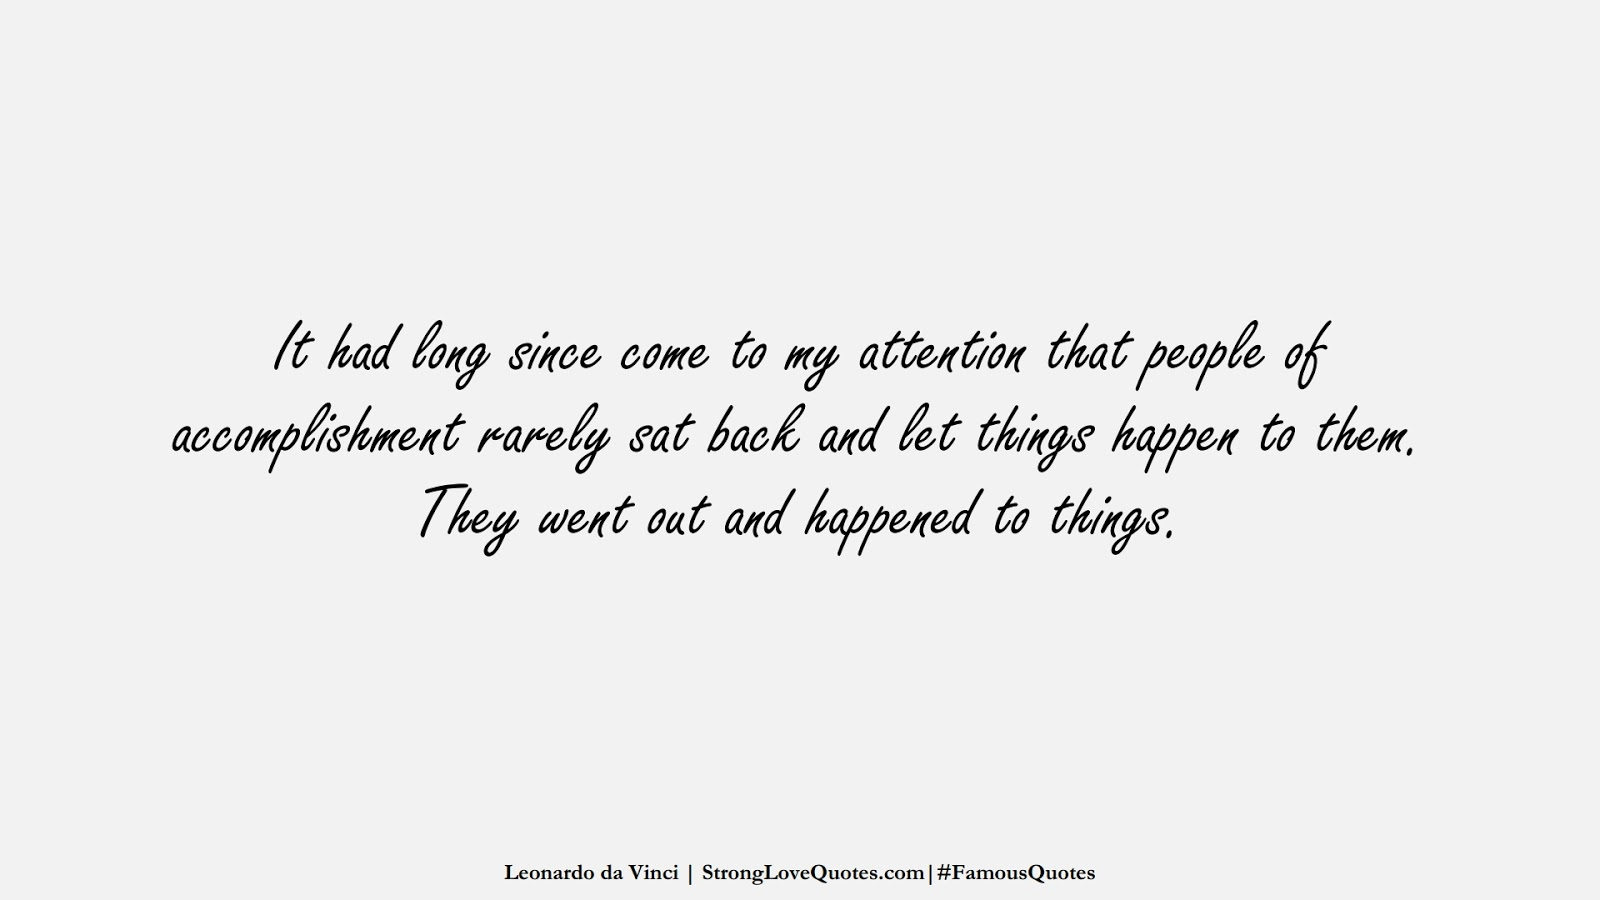 It had long since come to my attention that people of accomplishment rarely sat back and let things happen to them. They went out and happened to things. (Leonardo da Vinci);  #FamousQuotes